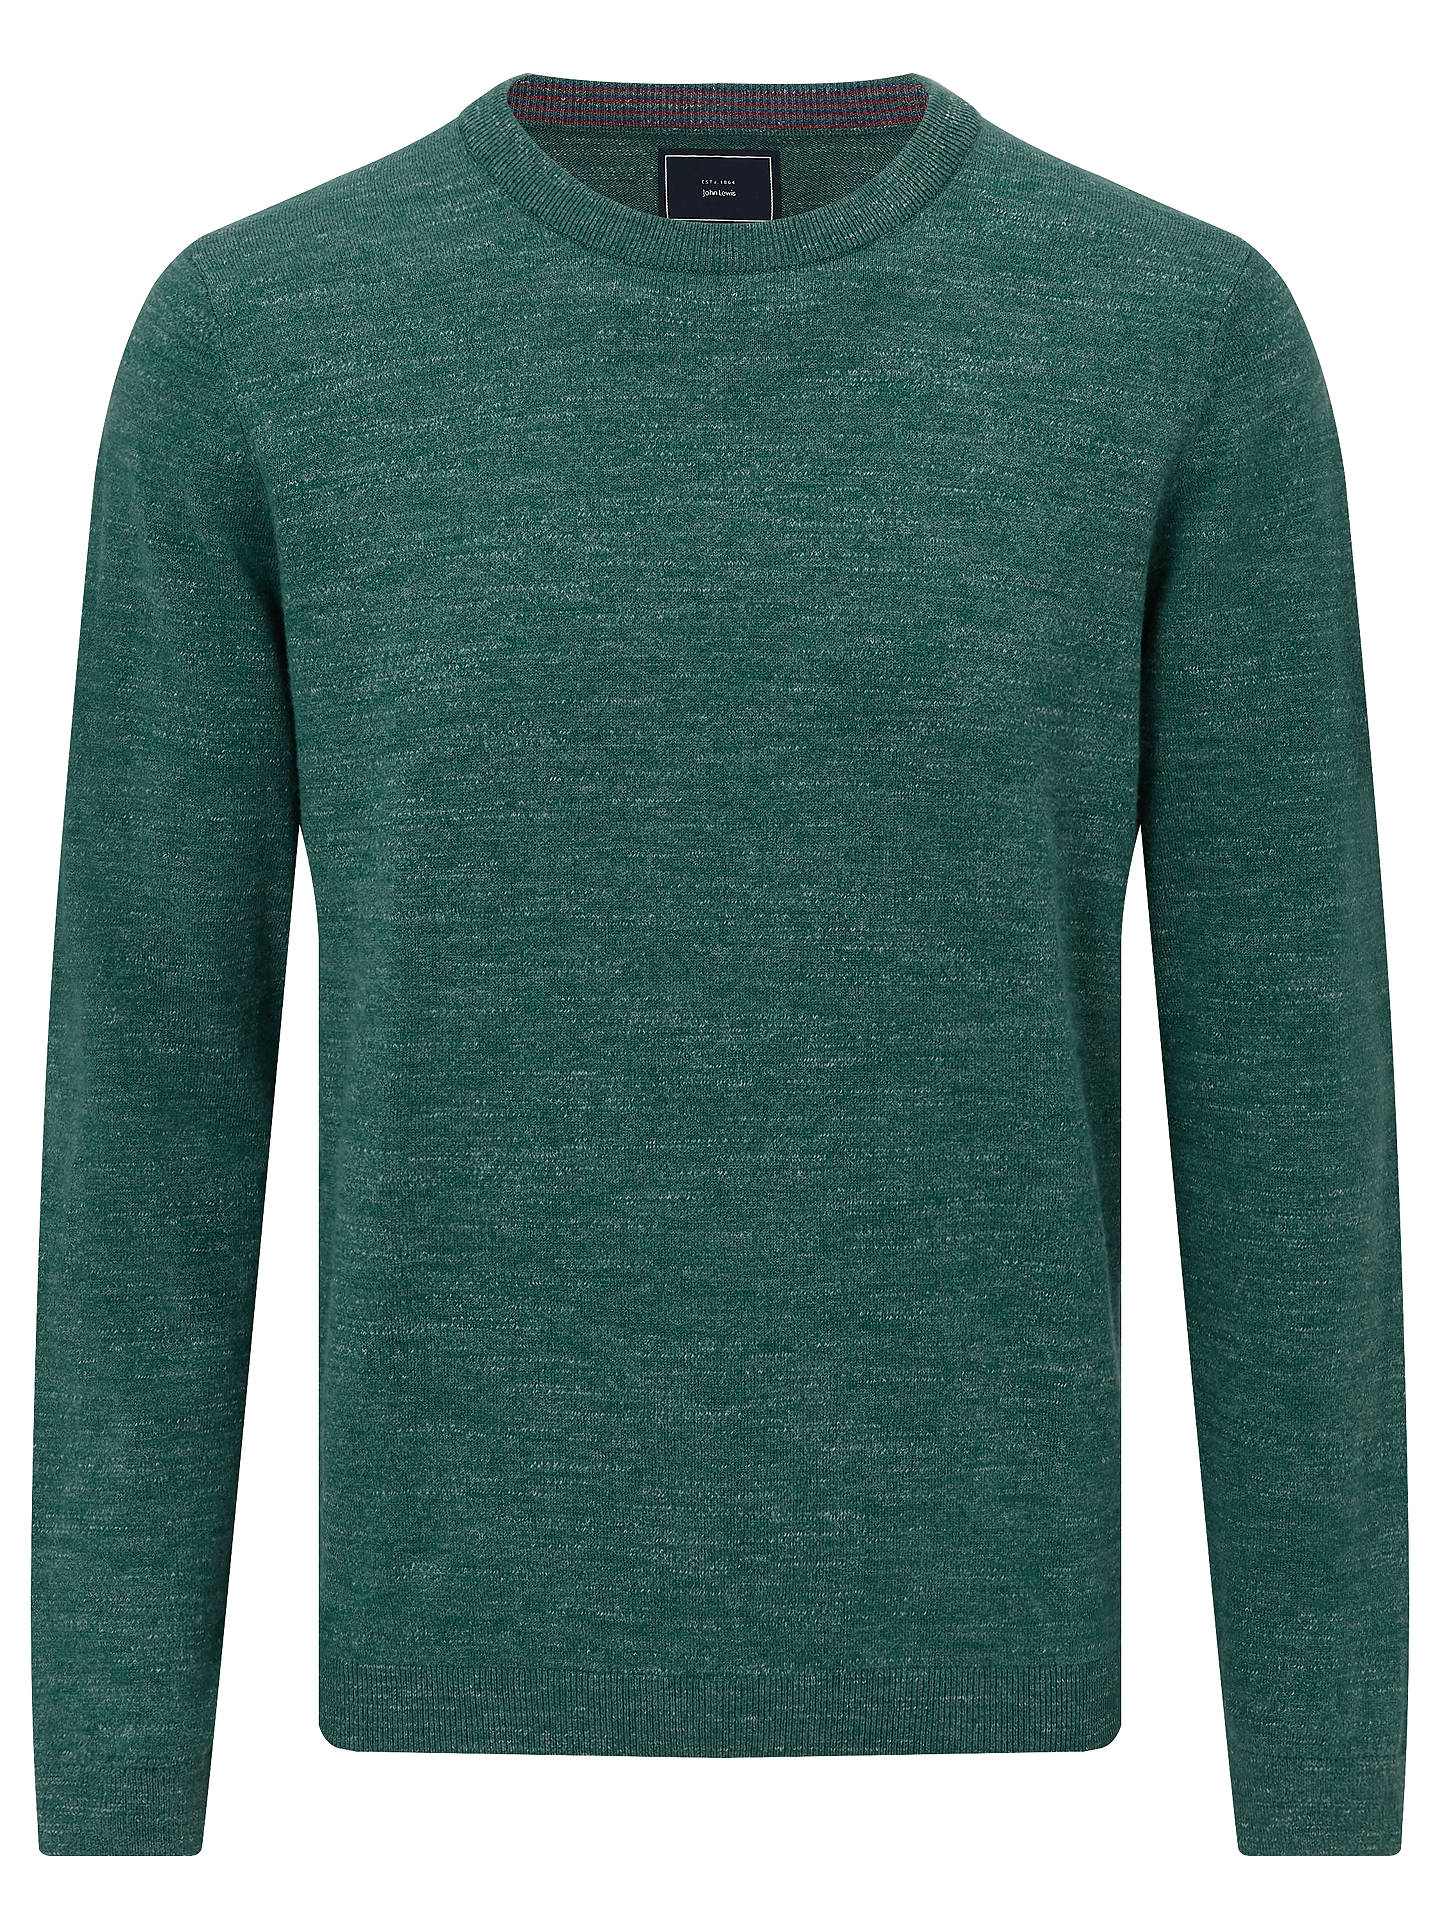 BuyJohn Lewis & Partners Budding Cotton Crew Neck Jumper, Teal, S Online at johnlewis.com